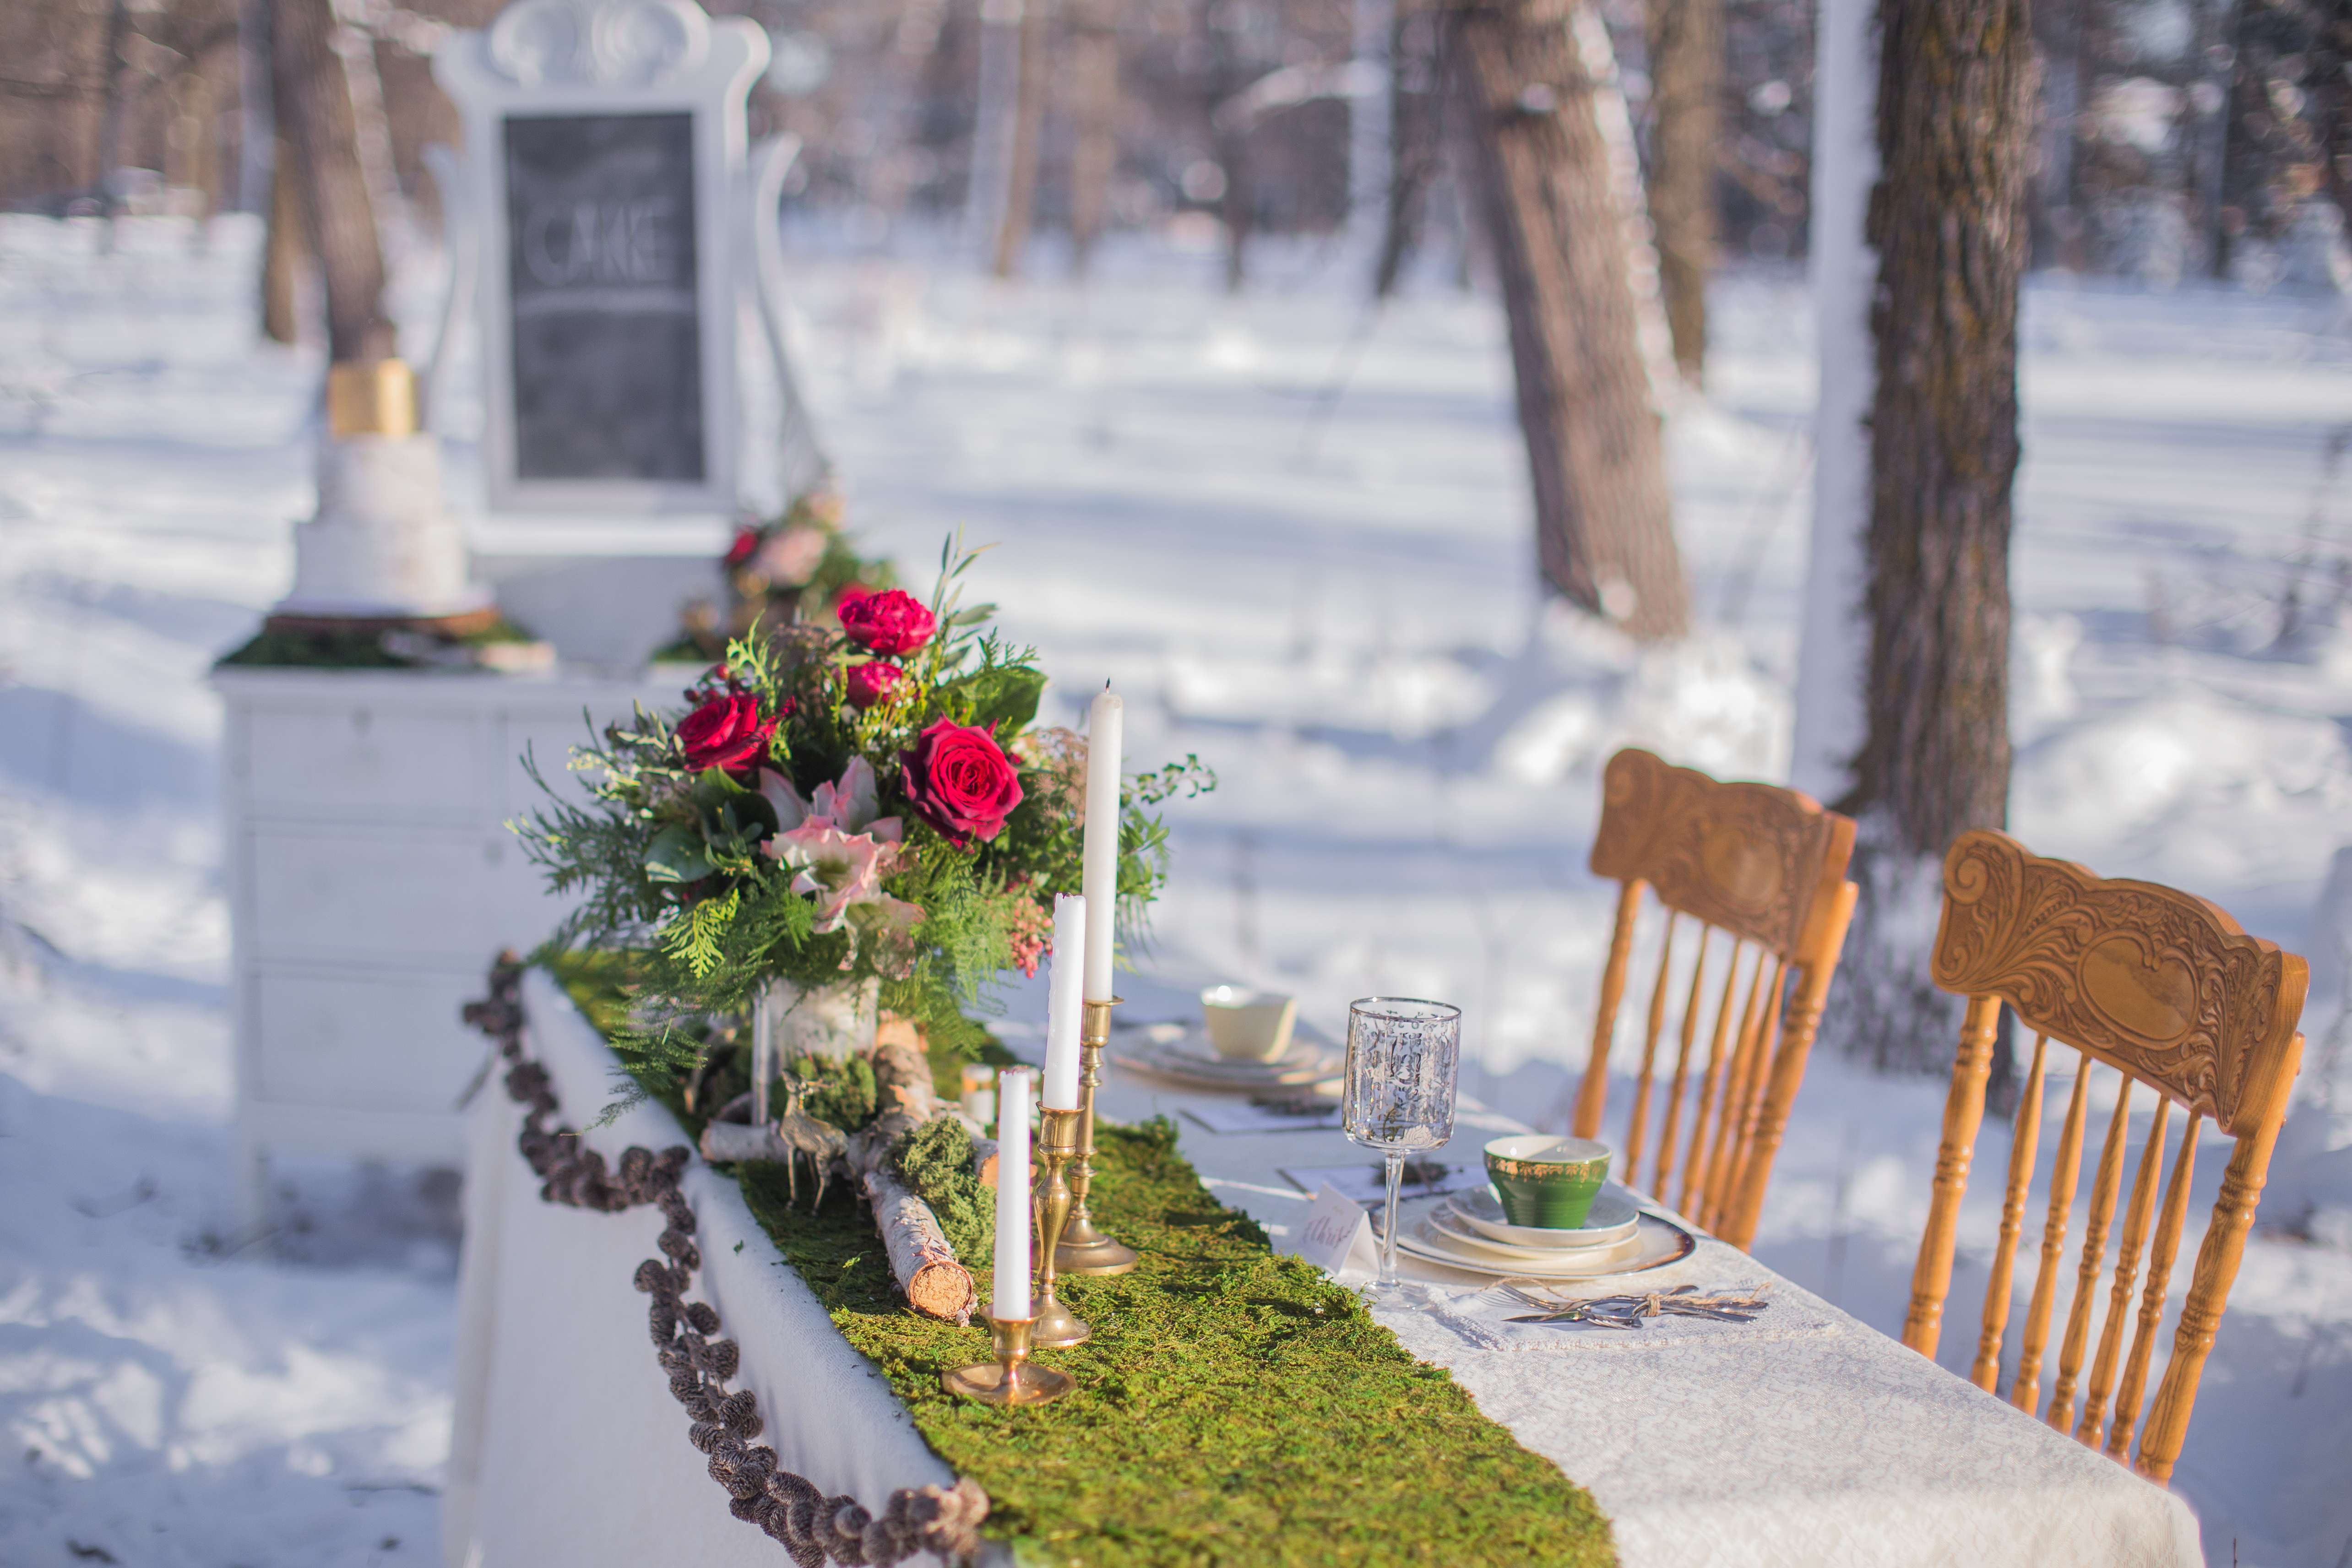 Winter wedding sweetheart table and vintage dresser cake stand